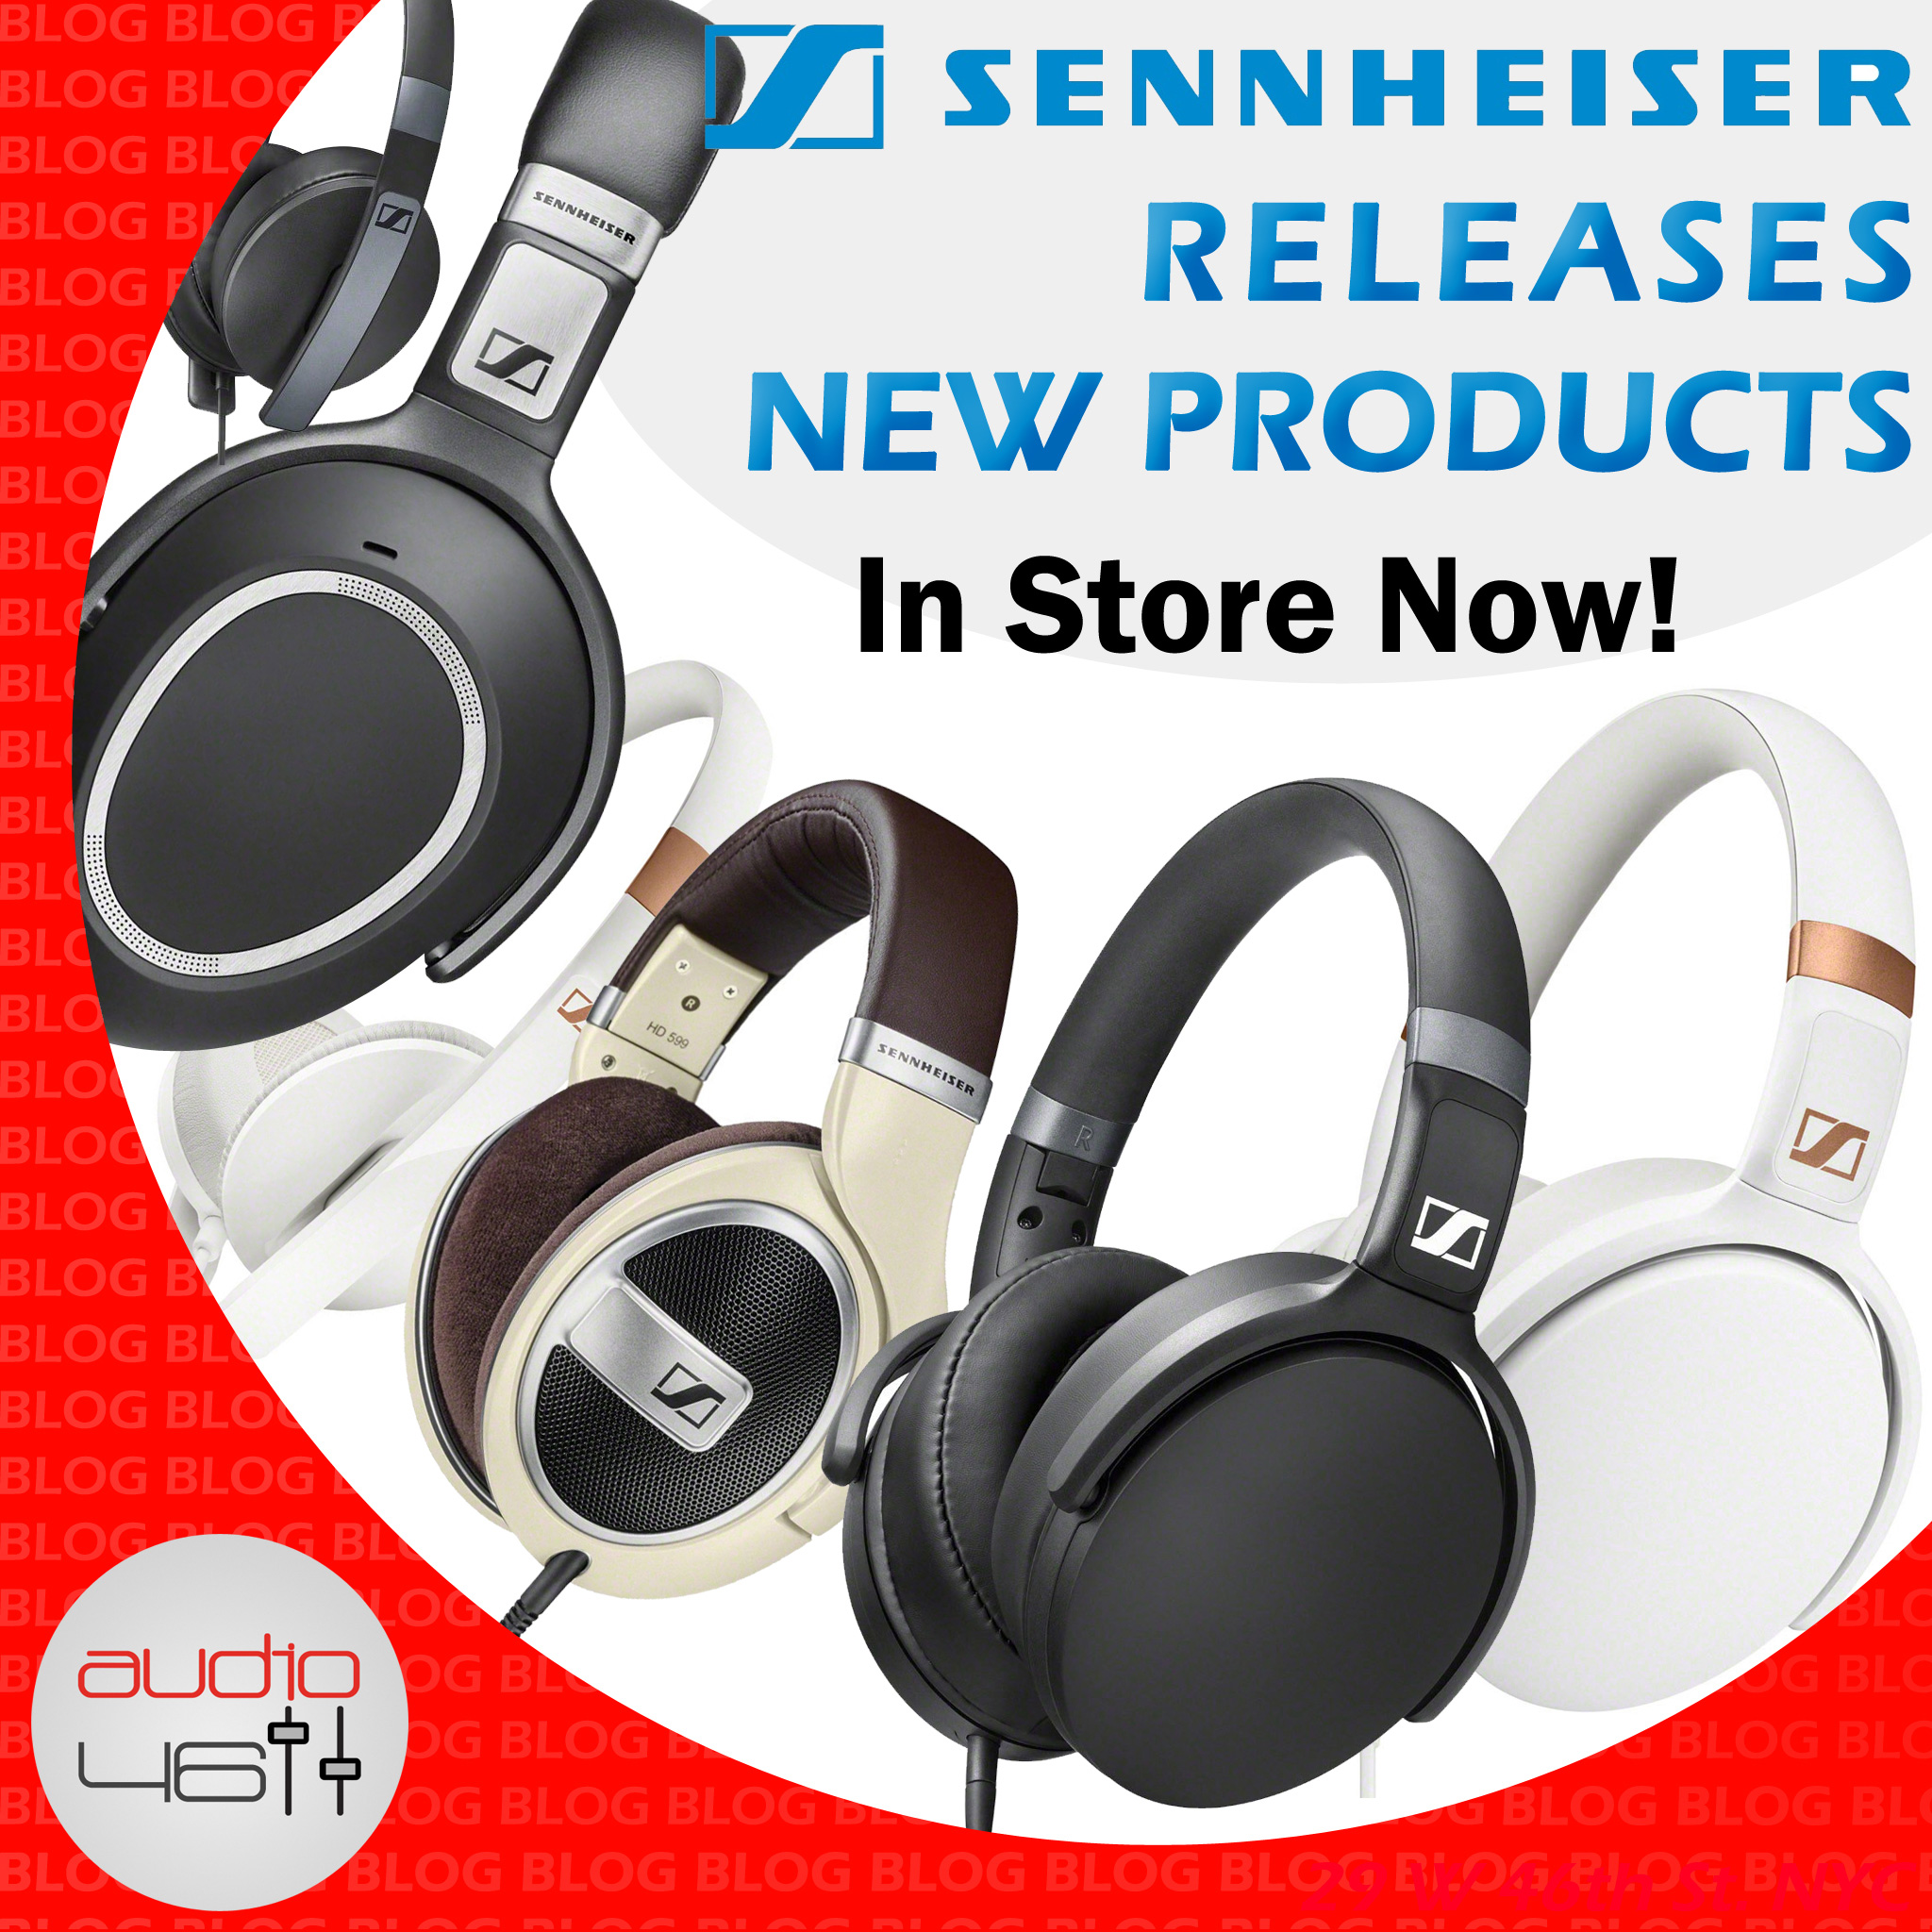 Sennheiser Releases a NEW line and its in store